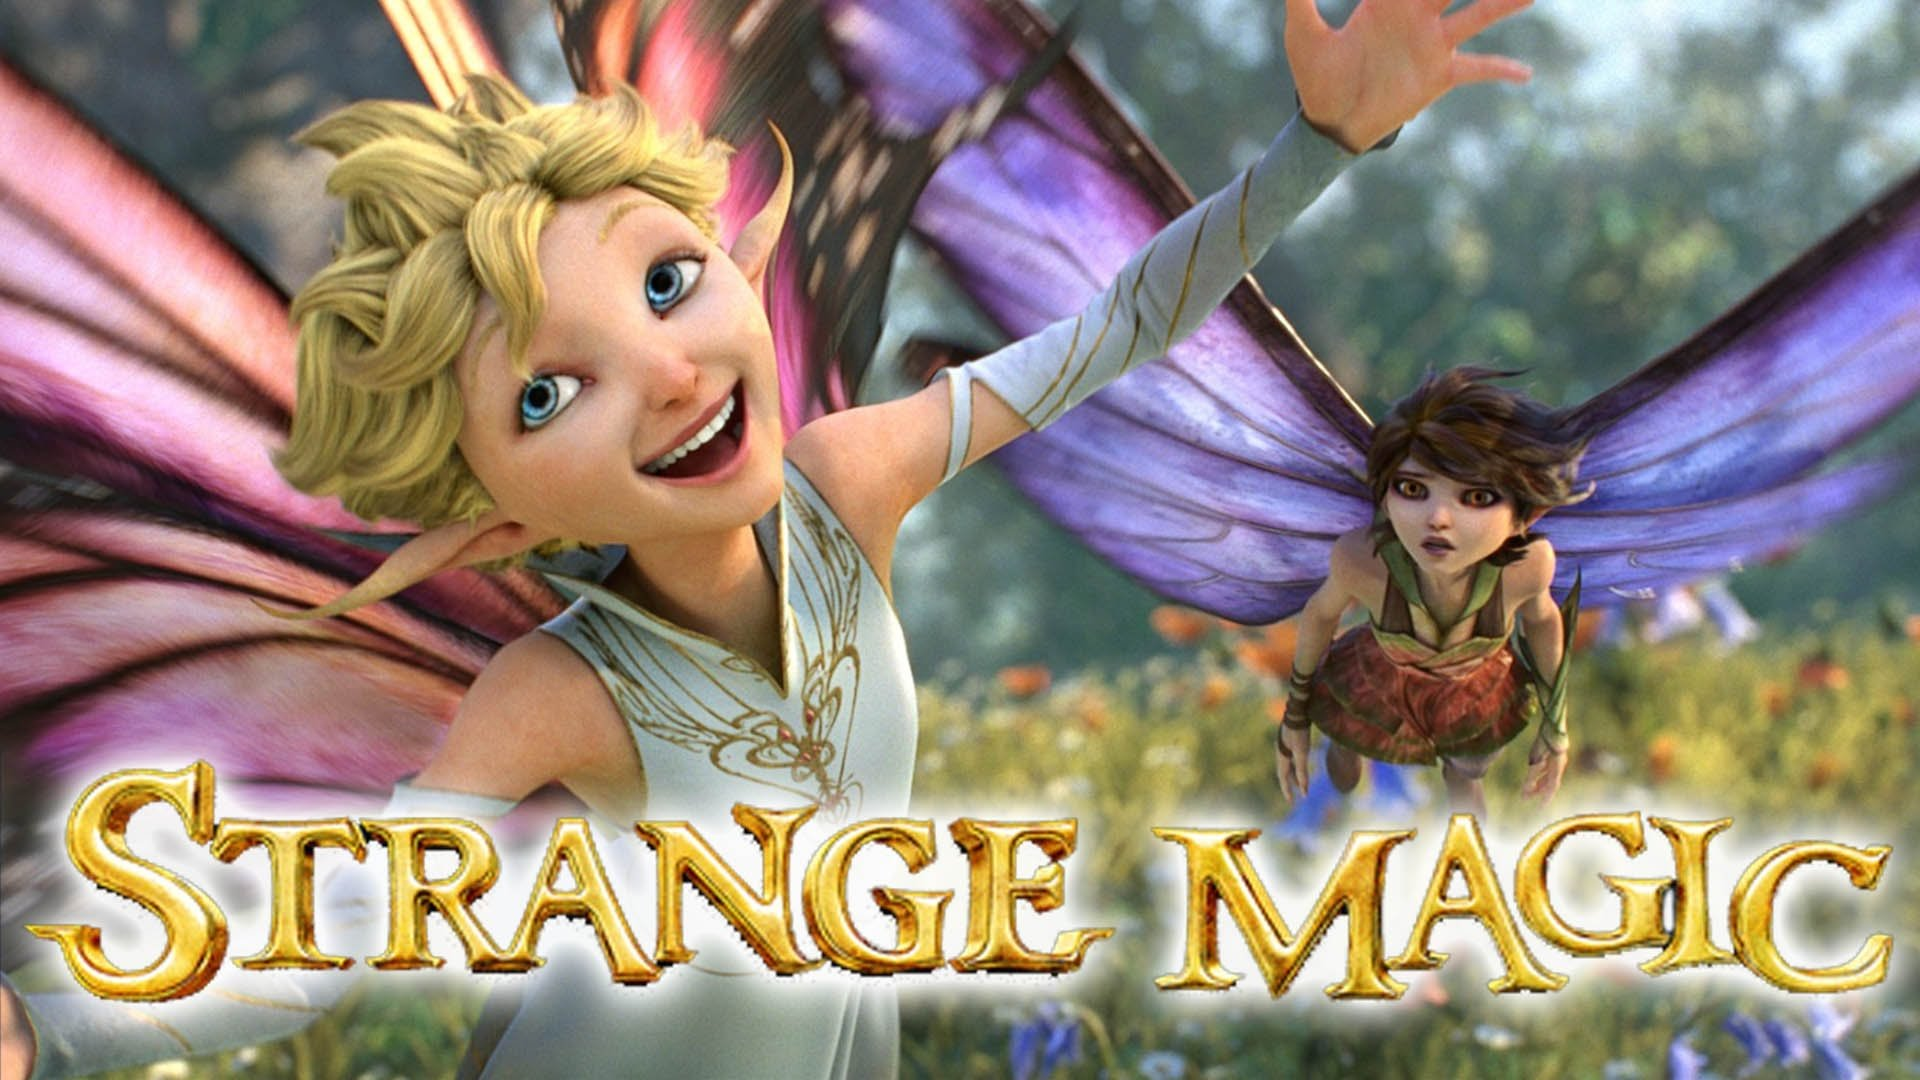 5 Strange Magic HD Wallpapers Background Images 1920x1080